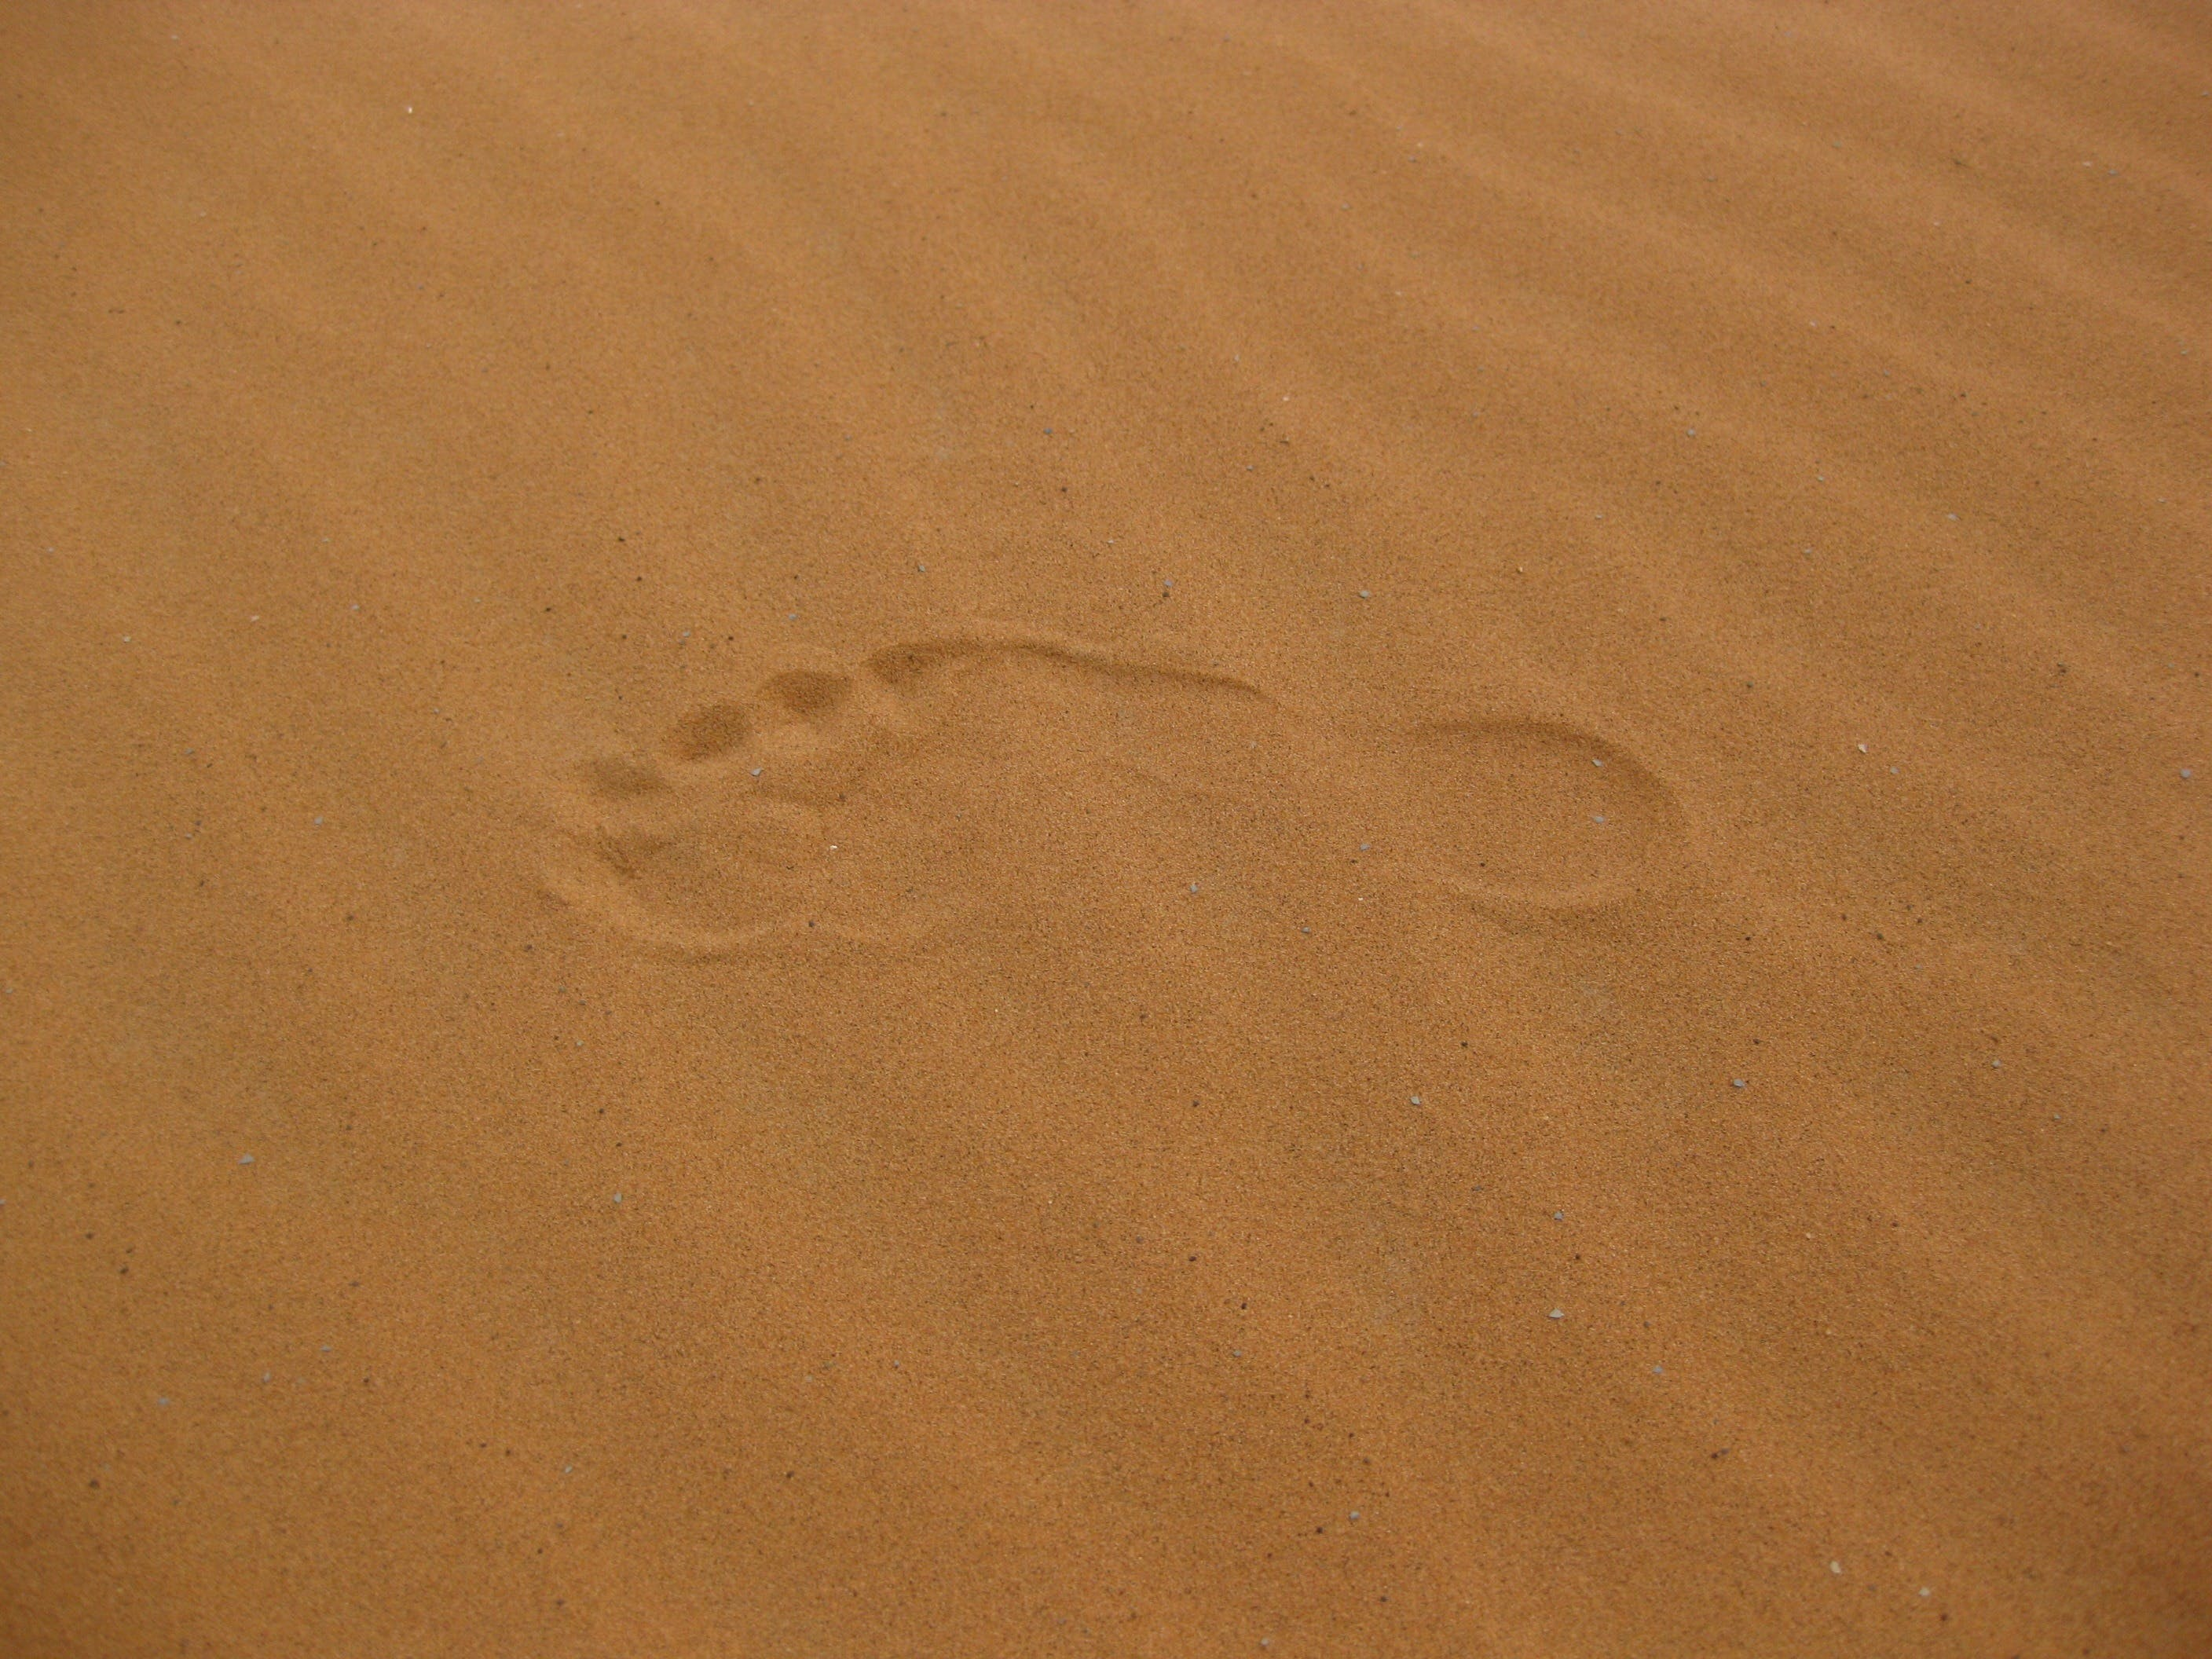 Single Foot Print on the Sand